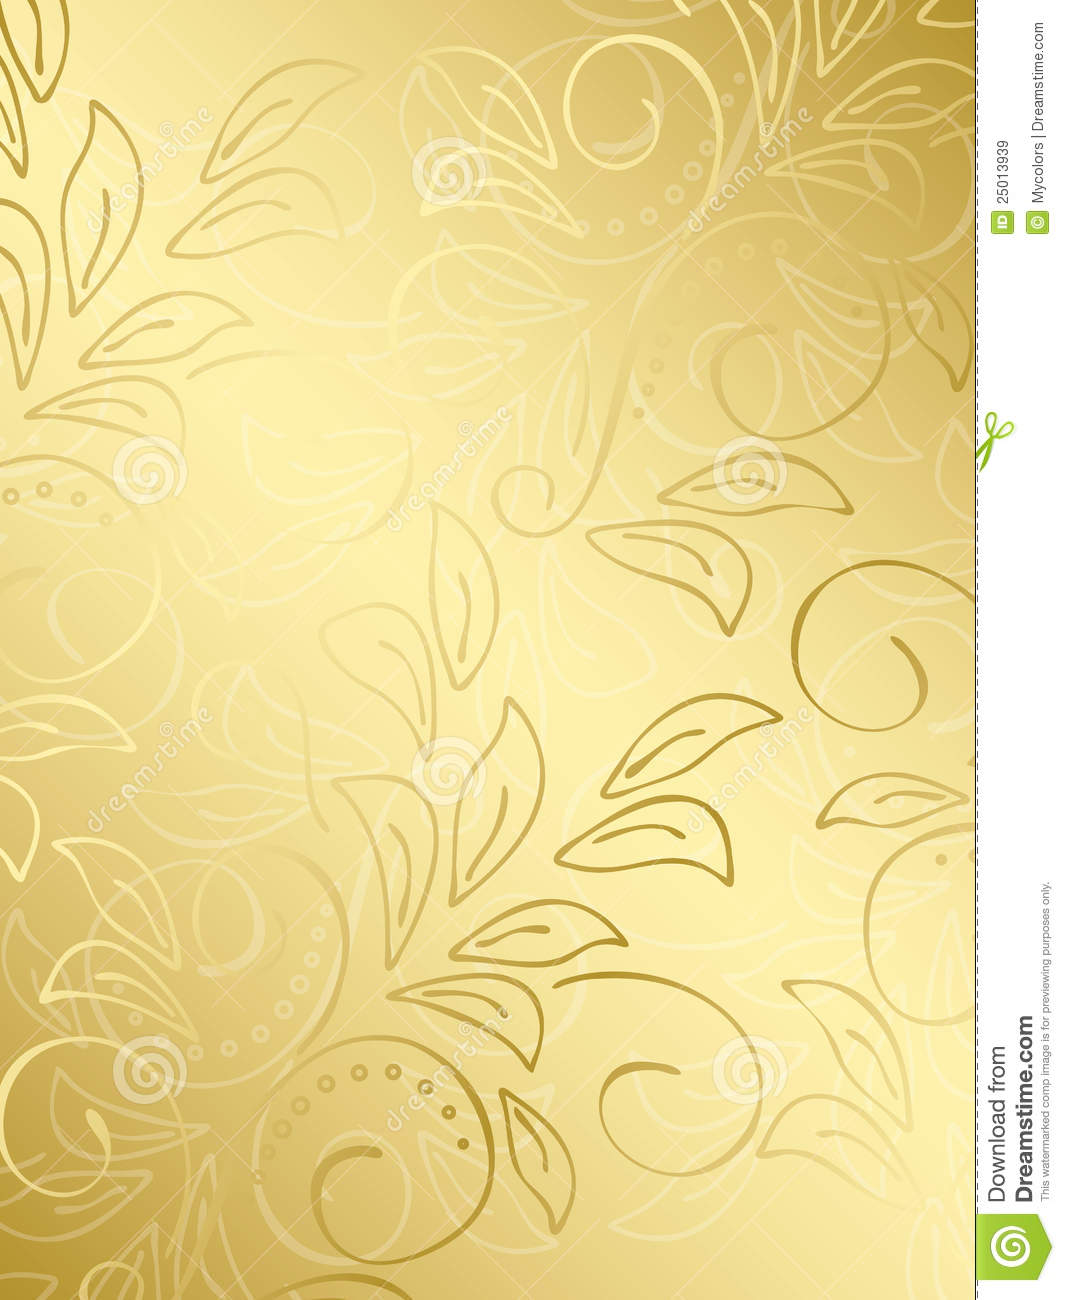 Gold Floral Vector Background With Gradient Stock Vector